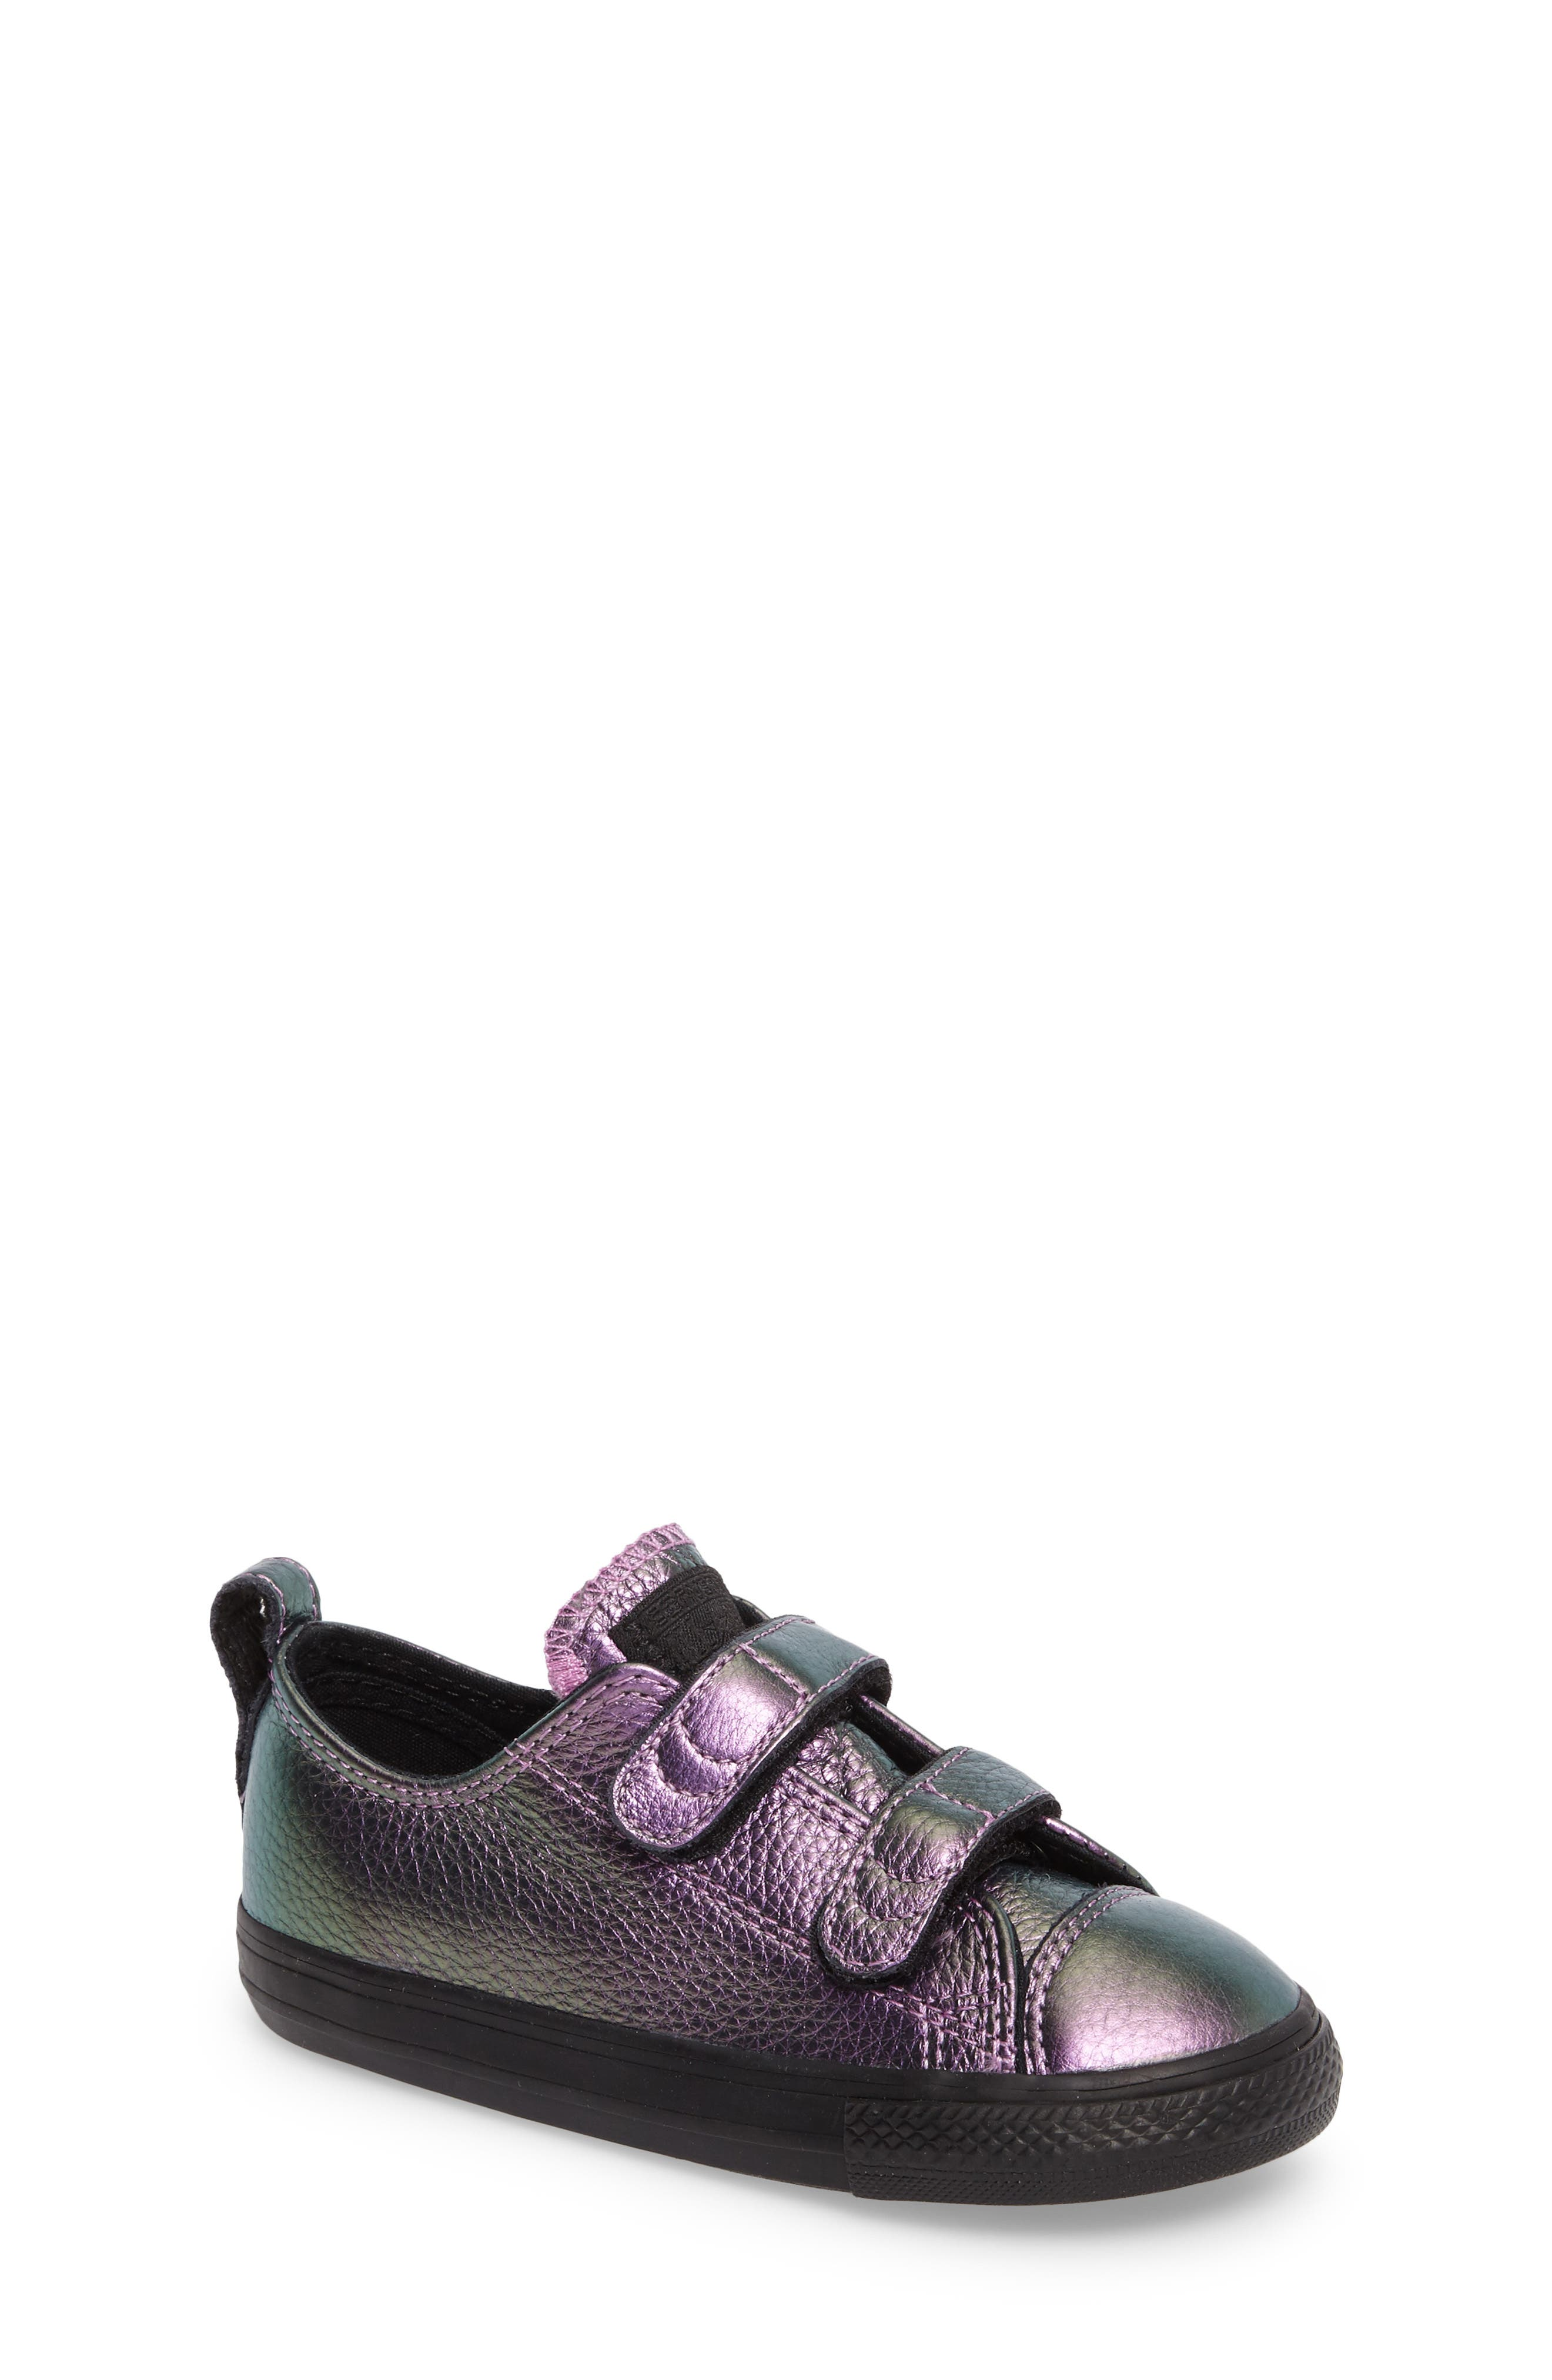 Chuck Taylor<sup>®</sup> All Star<sup>®</sup> Iridescent Leather Low Top Sneaker,                         Main,                         color, Violet Leather